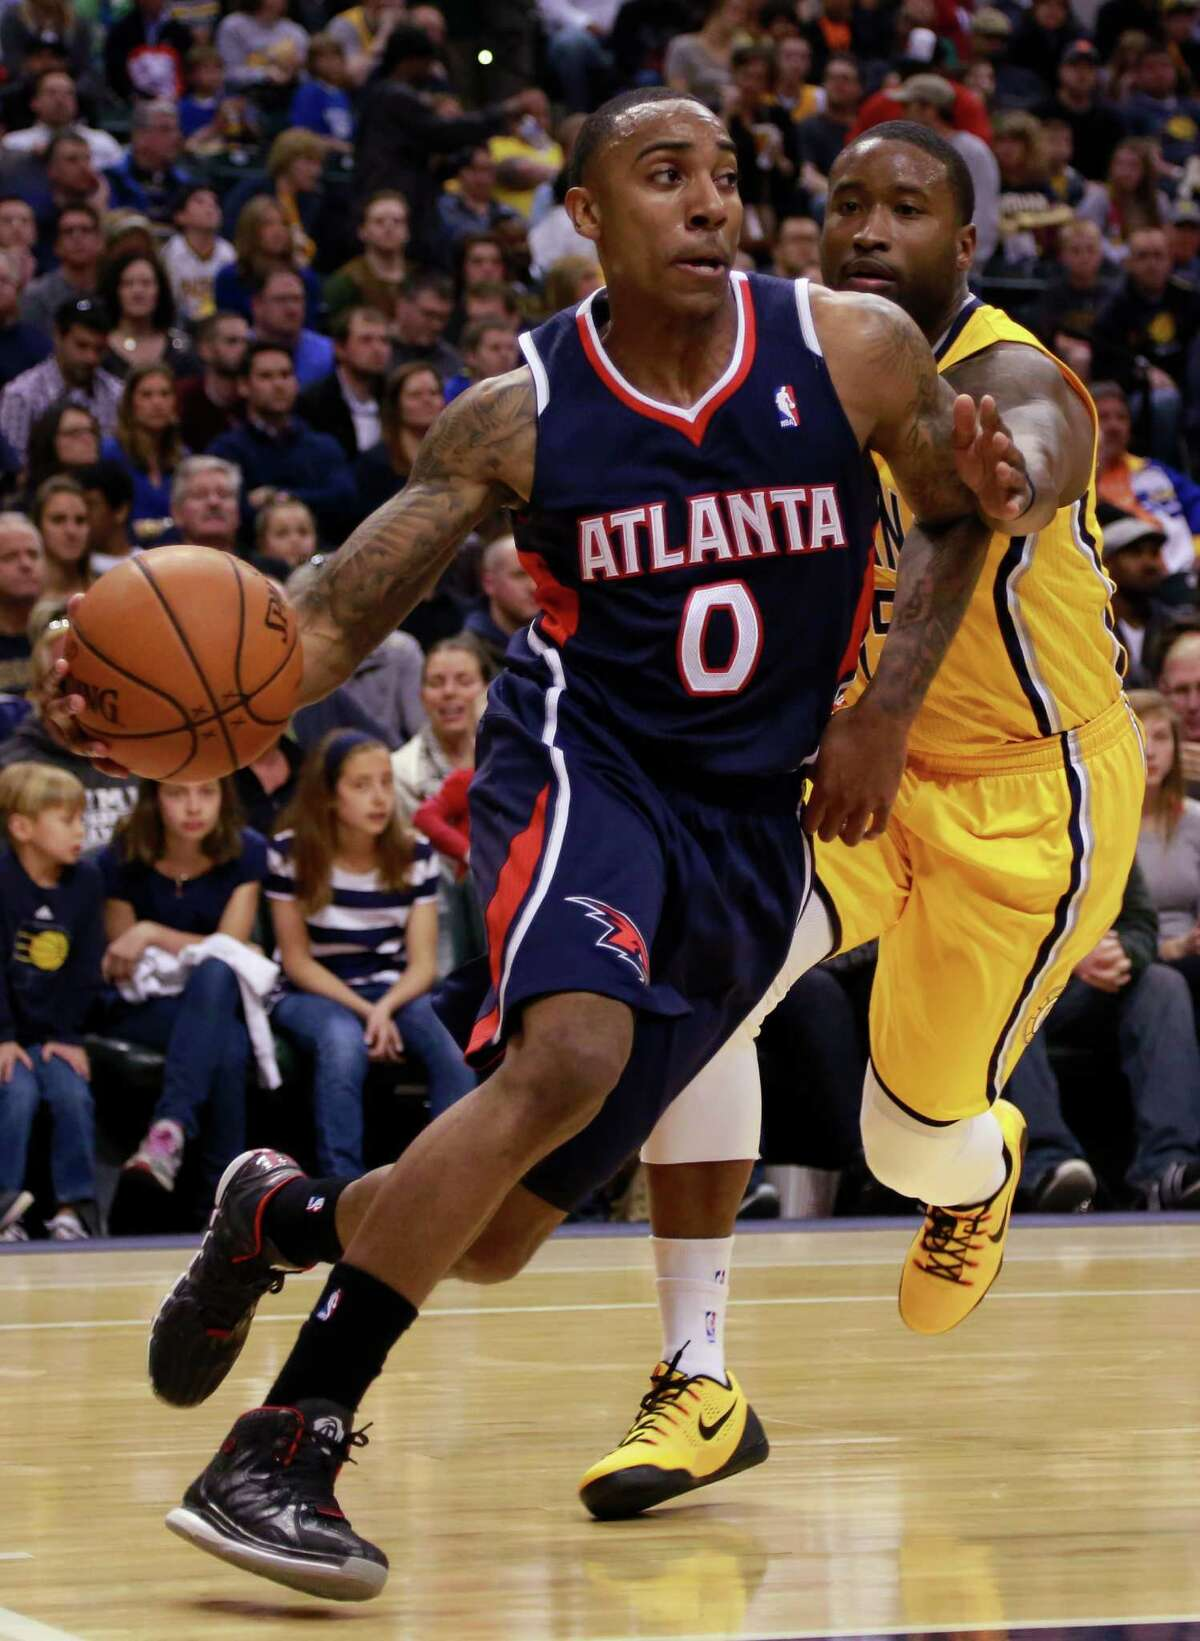 Worst/cheapest seat:$10.00 The home opener for Jeff Teague and the Atlanta Hawks is Nov. 1 against the Indiana Pacers.